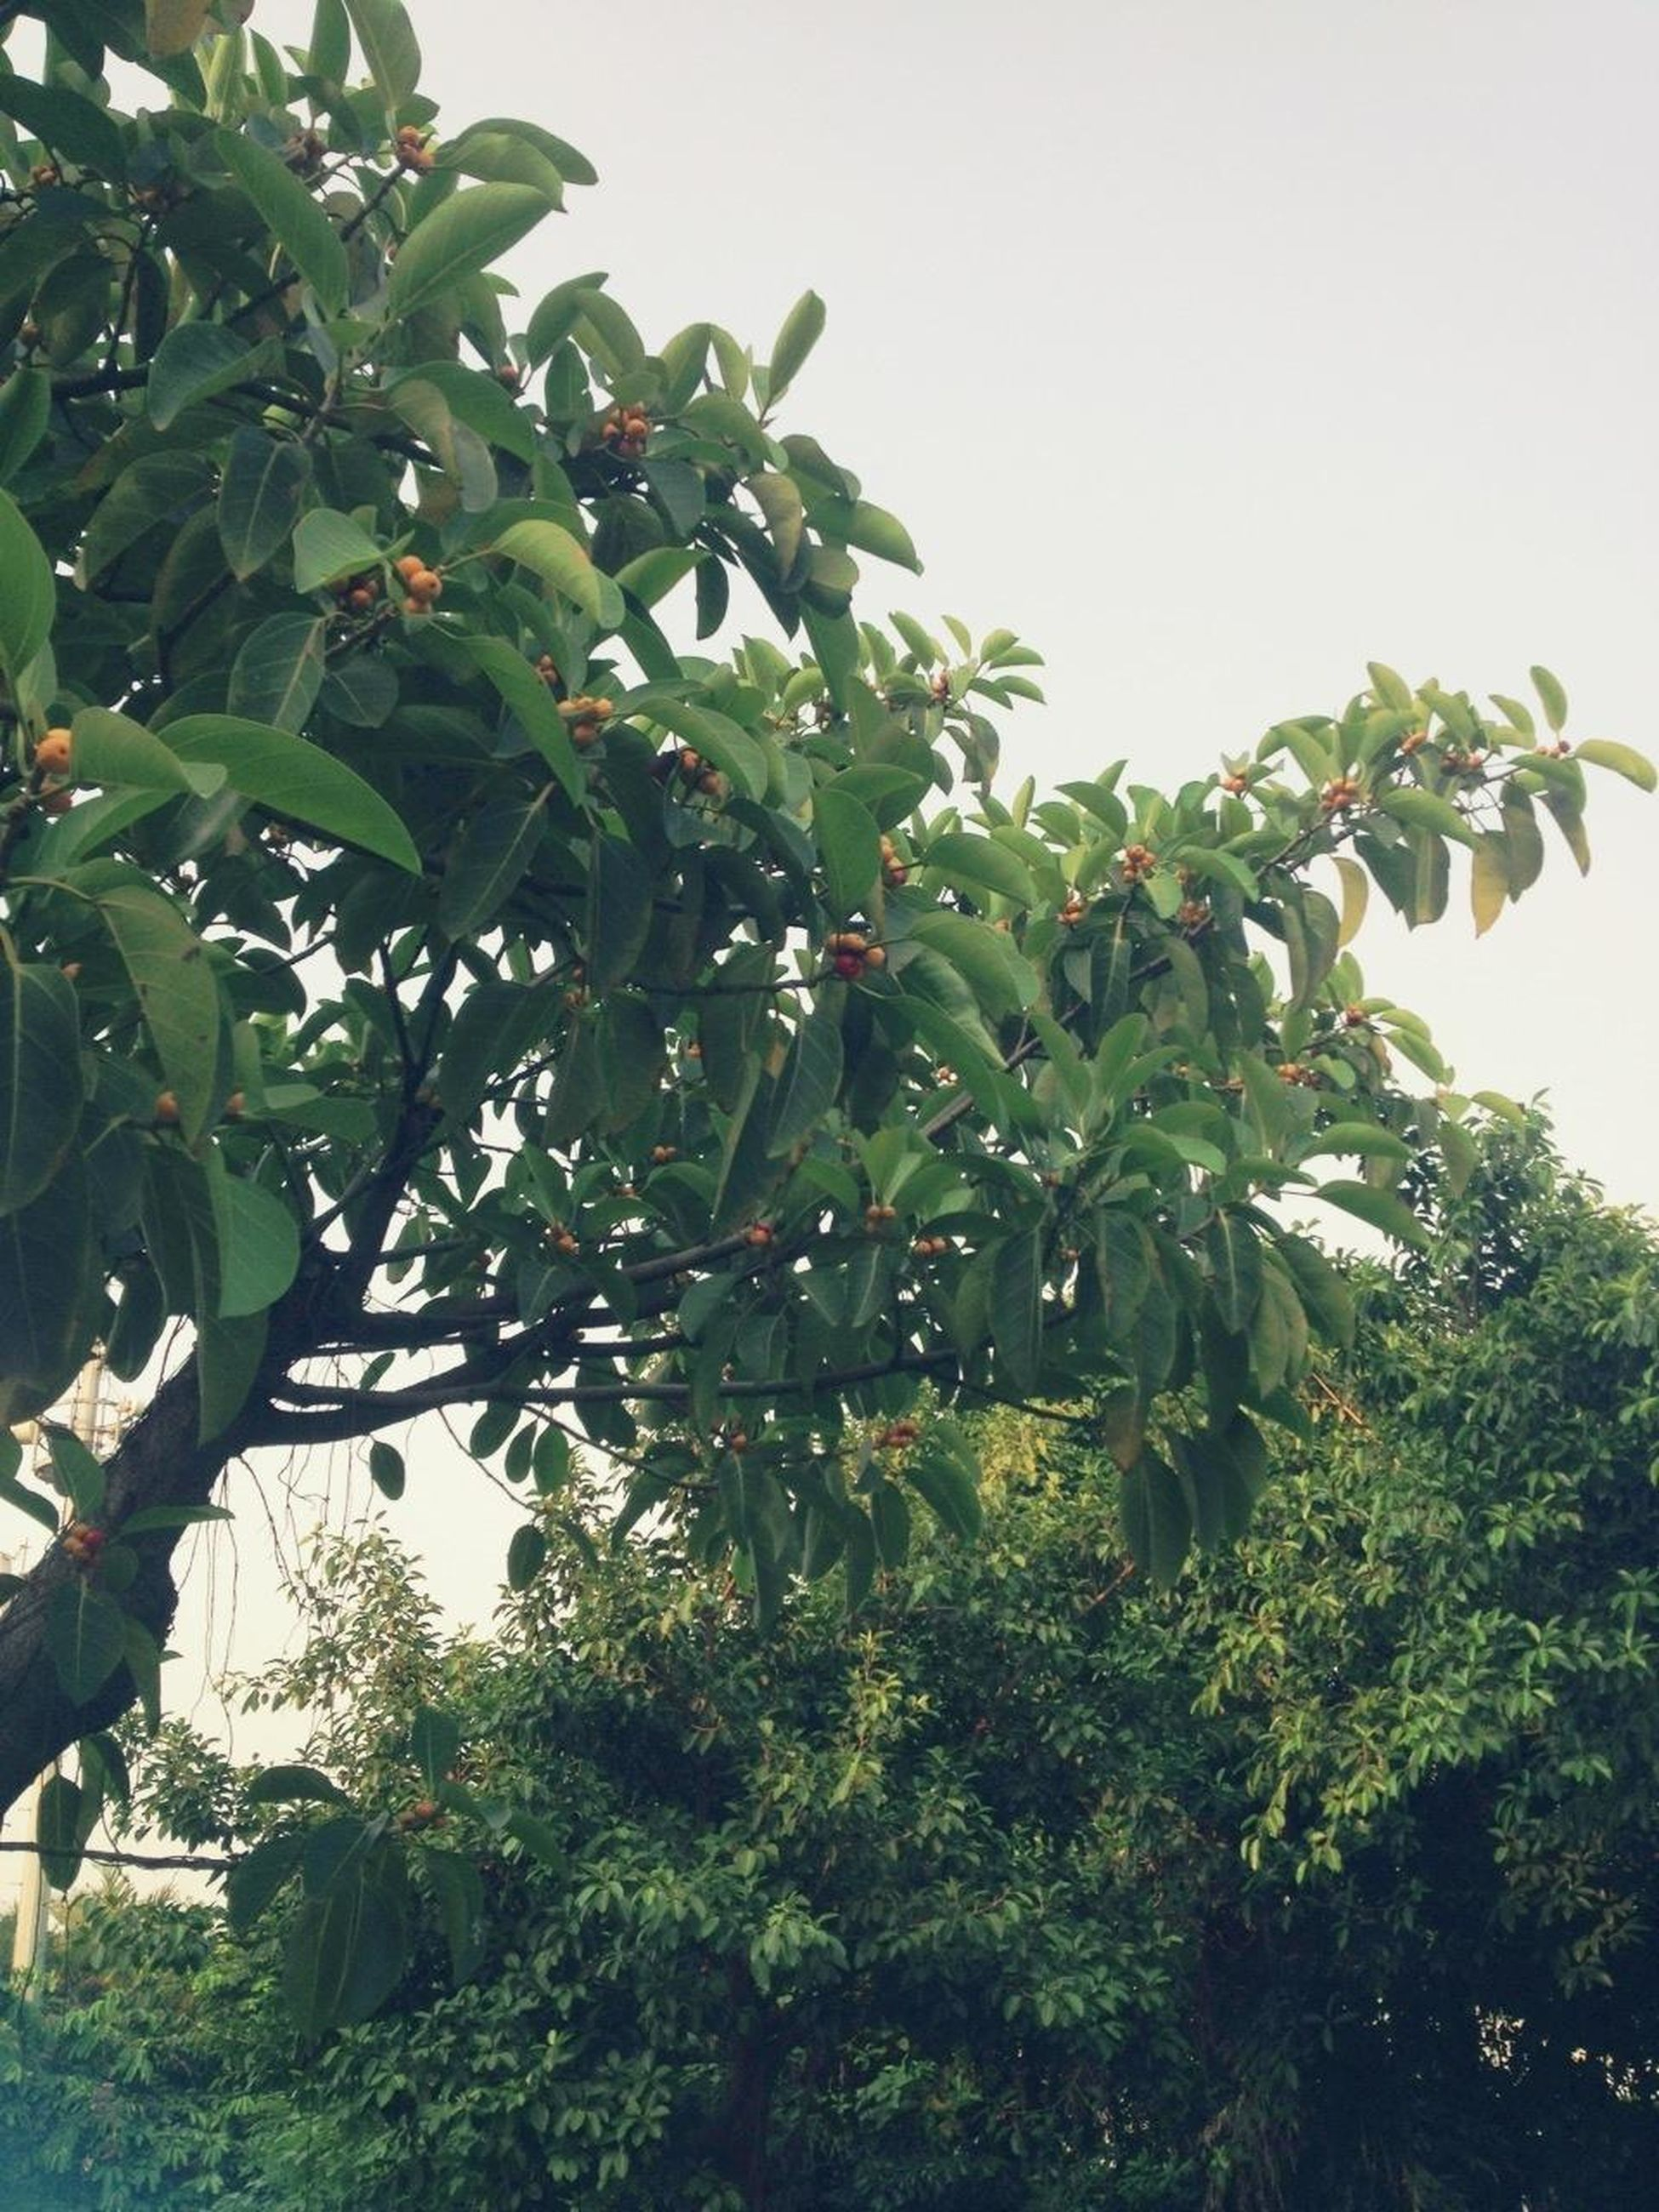 tree, growth, green color, leaf, low angle view, clear sky, branch, nature, fruit, growing, plant, green, lush foliage, sky, day, tranquility, beauty in nature, outdoors, no people, freshness